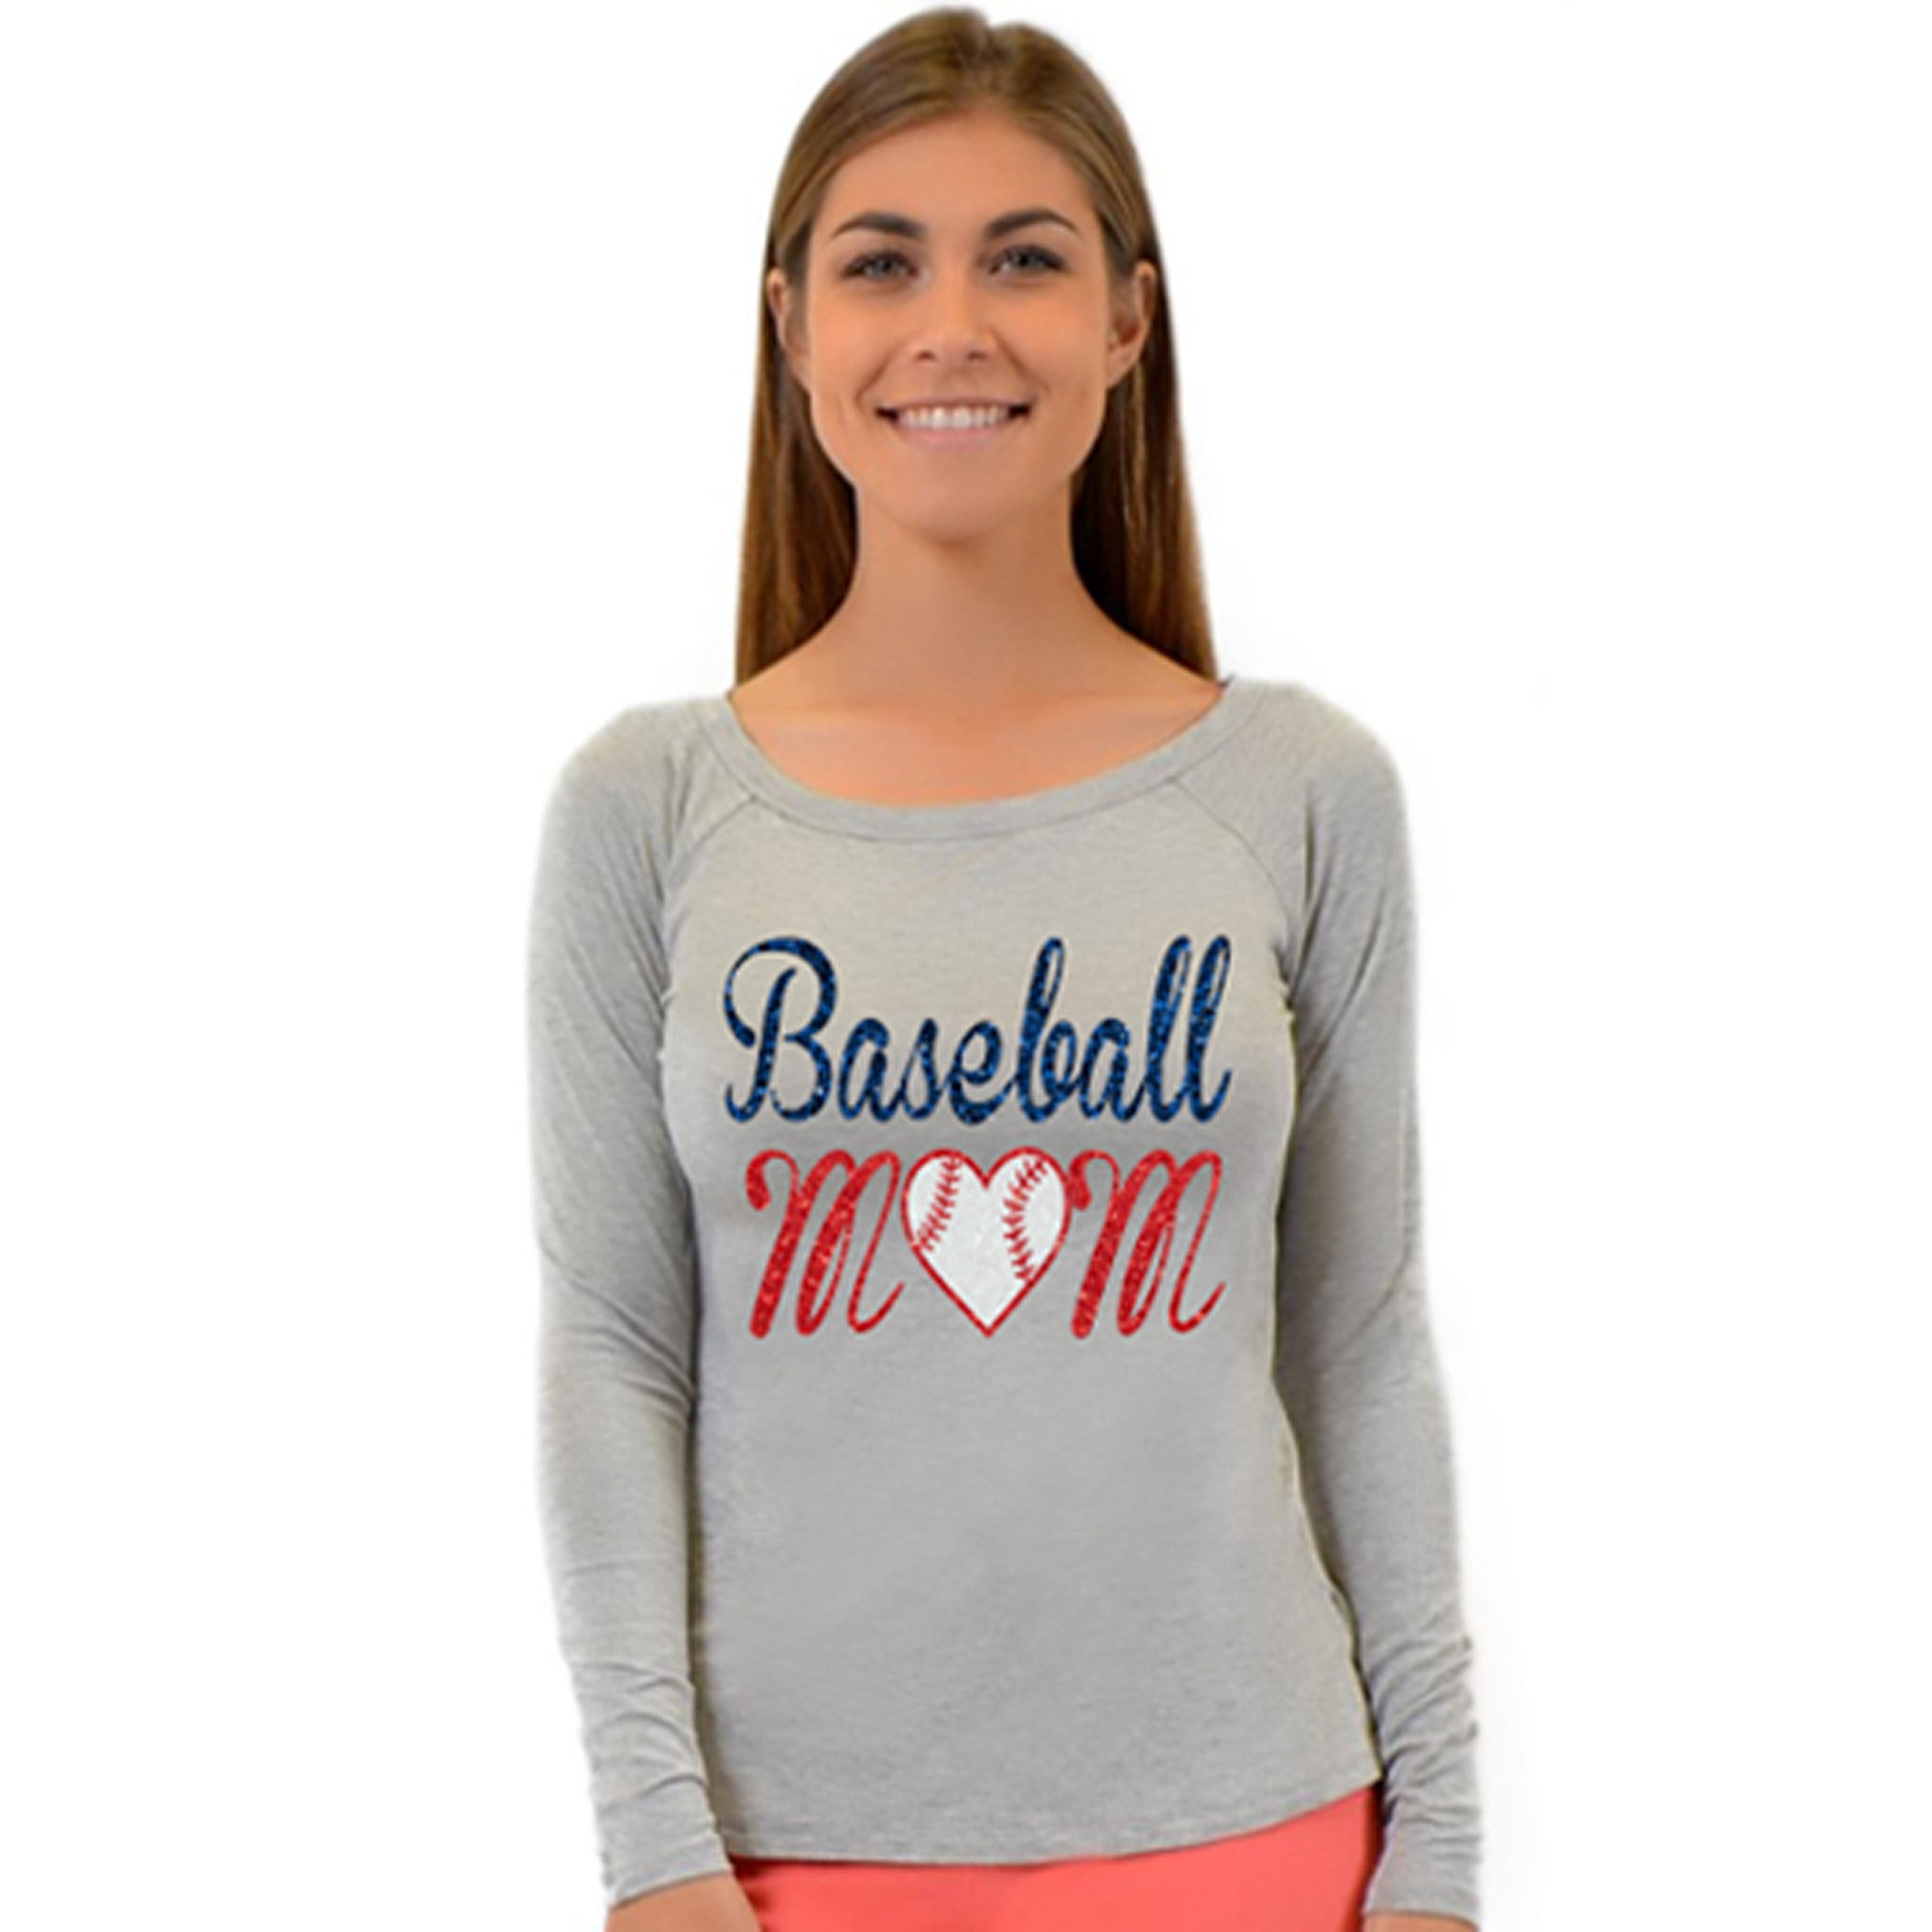 Women's Long Sleeve Baseball Mom Top